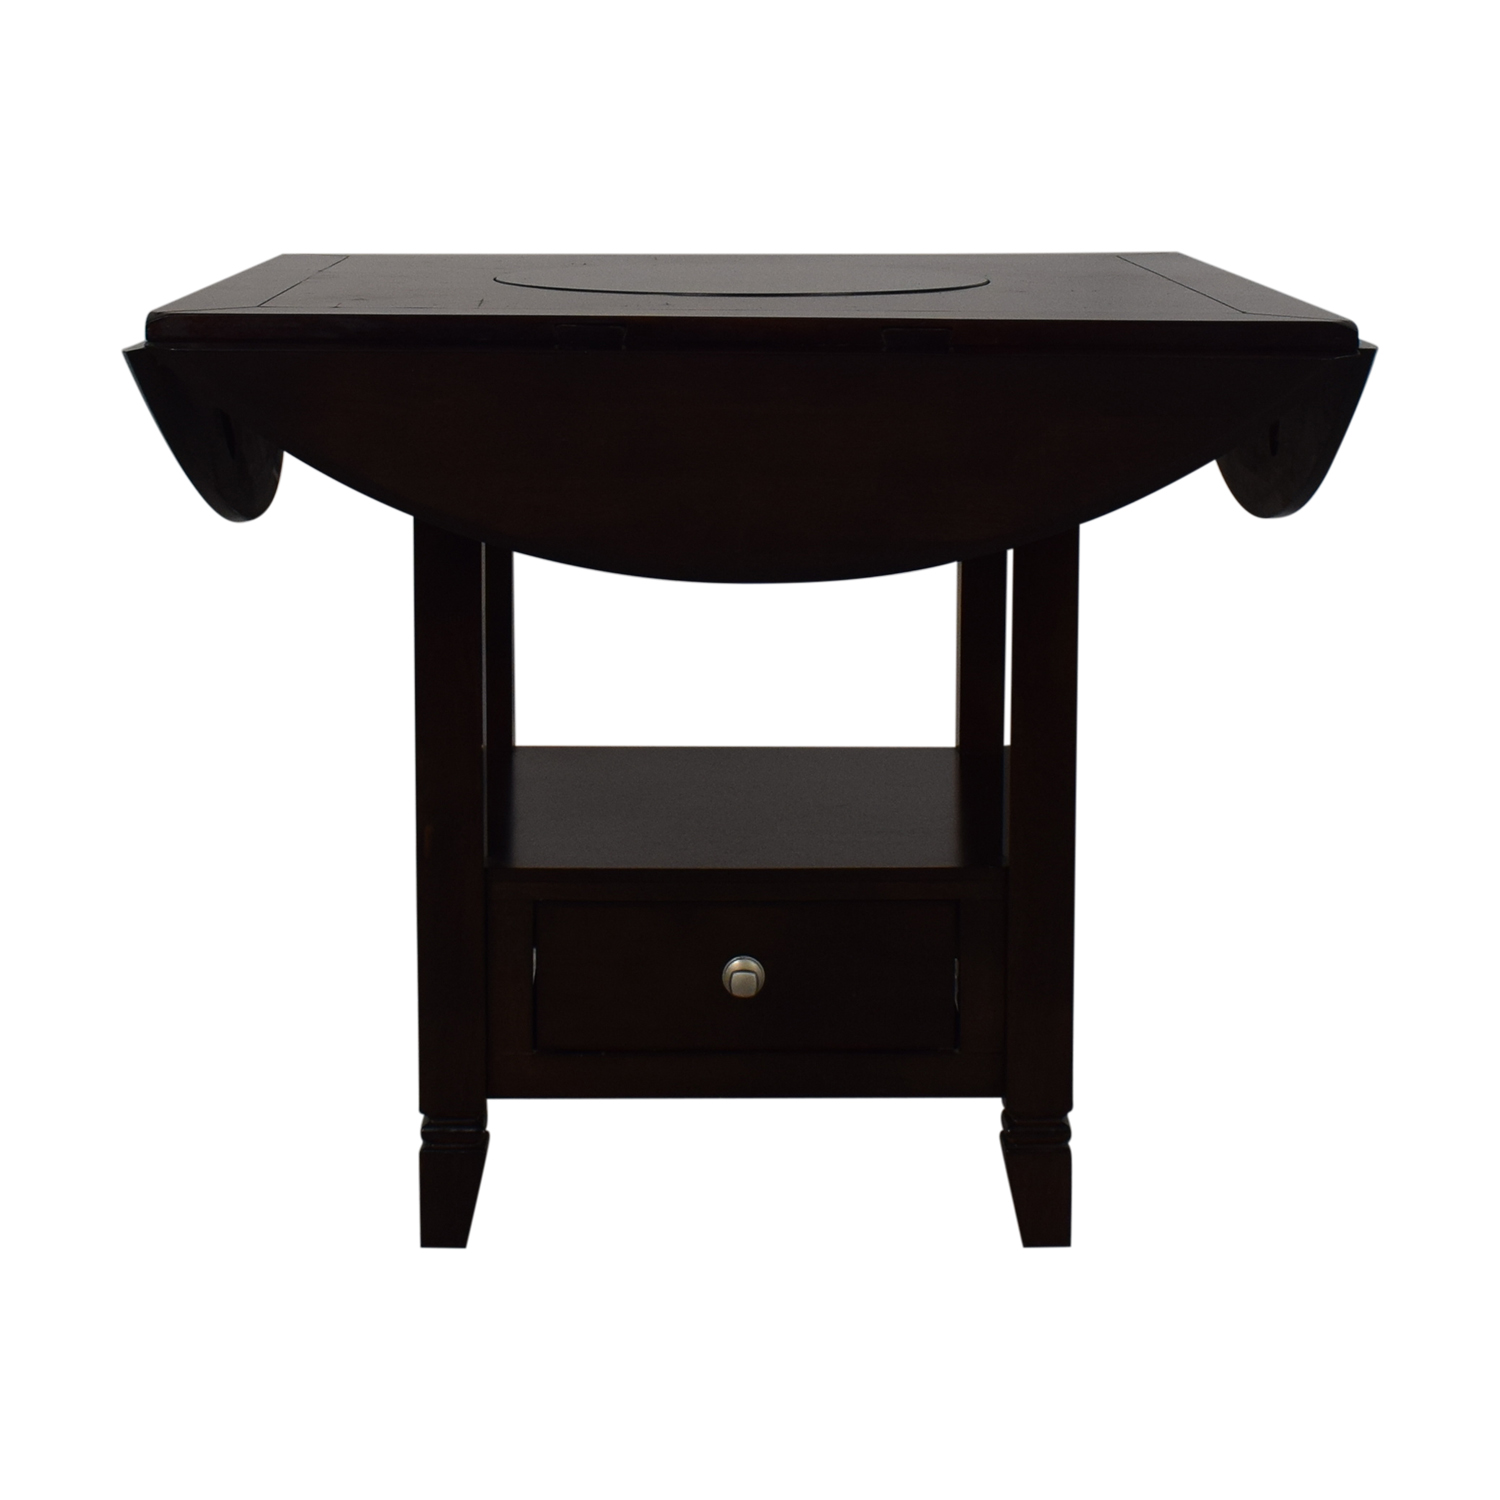 shop Raymour & Flanigan Raymour & Flanigan Bar Height Drop Leaf Dining Table online